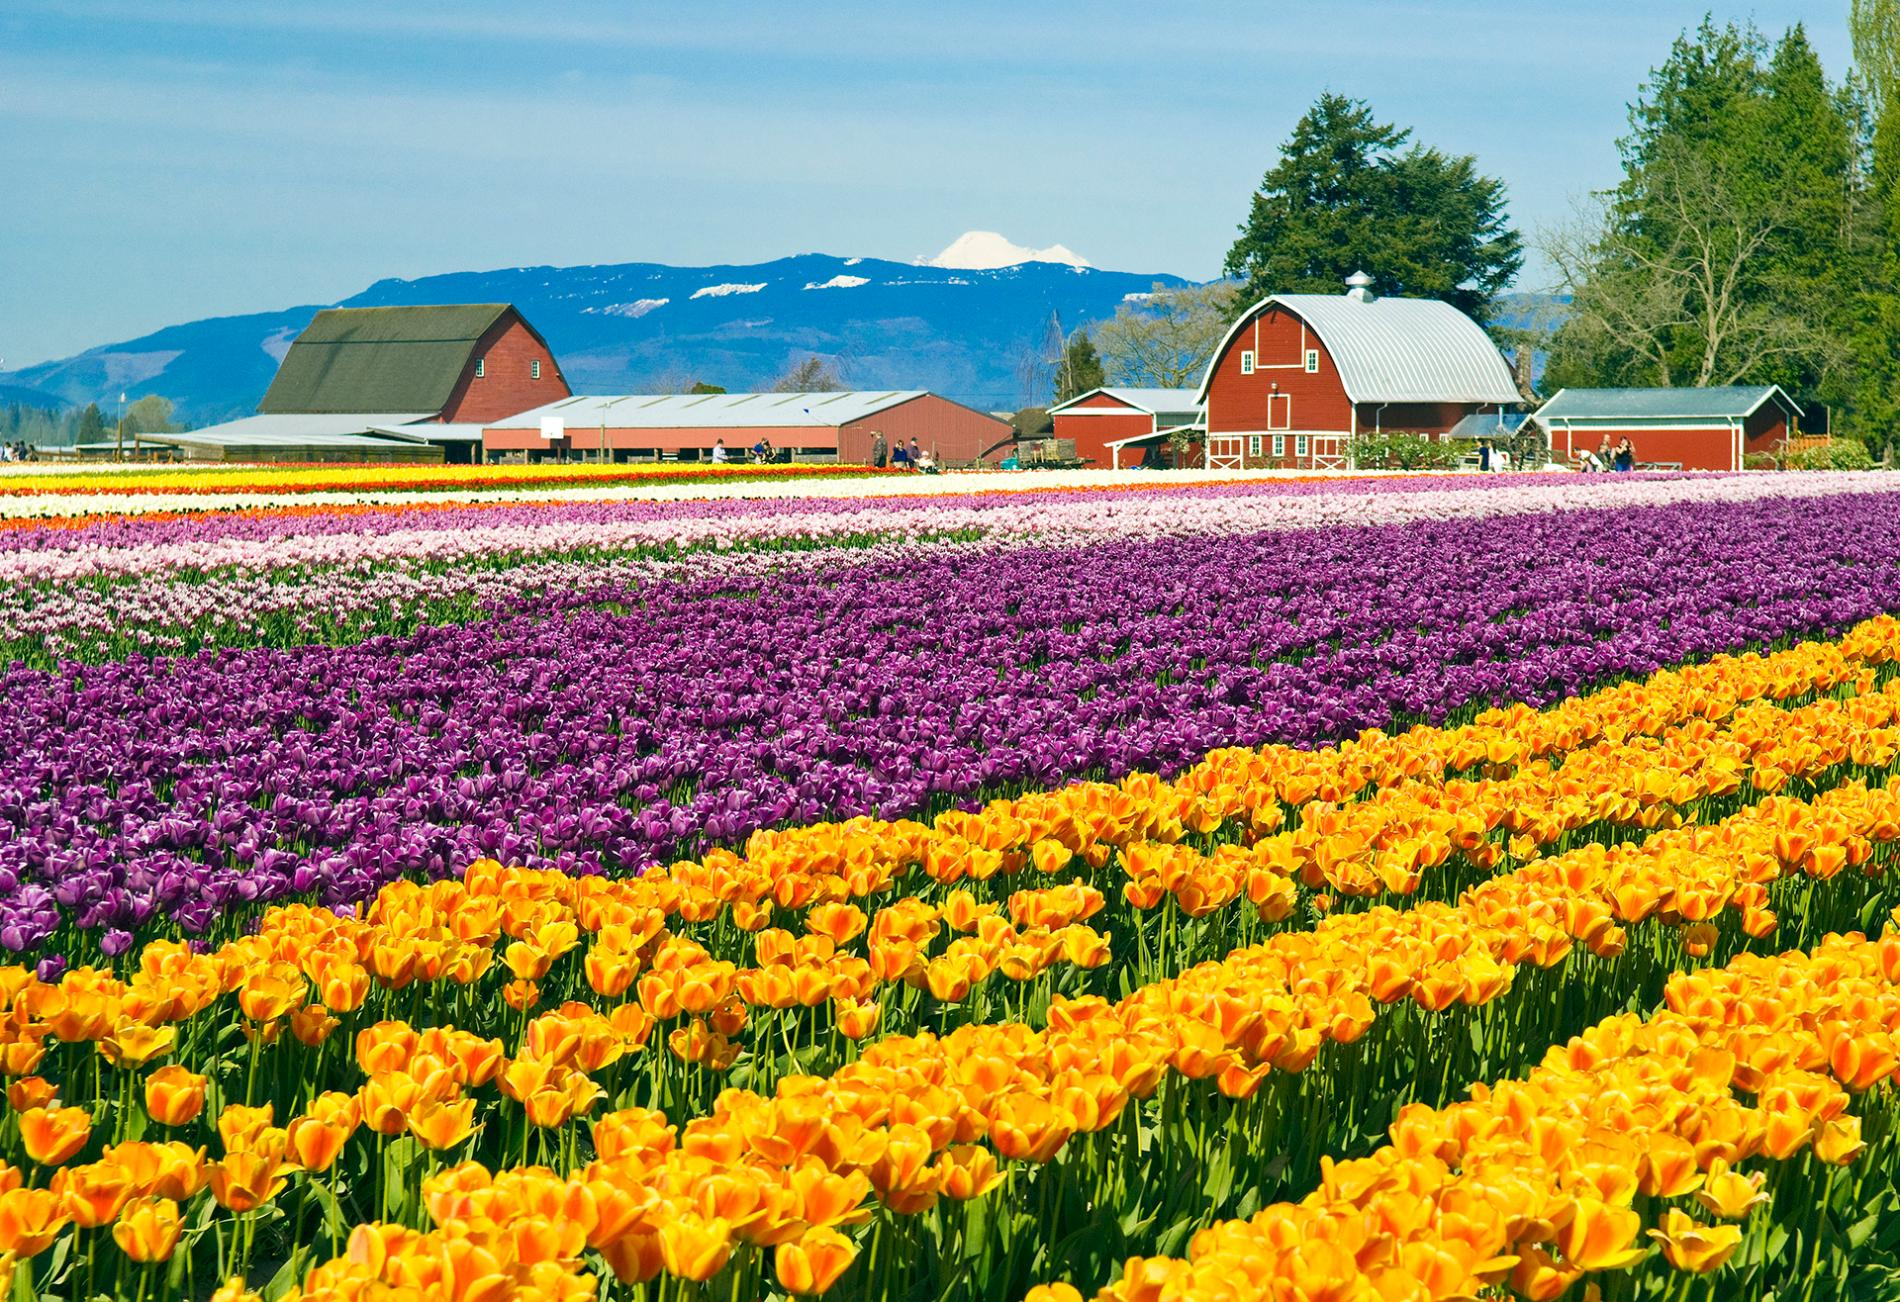 Skagit Valley in Washington State (Google Images)